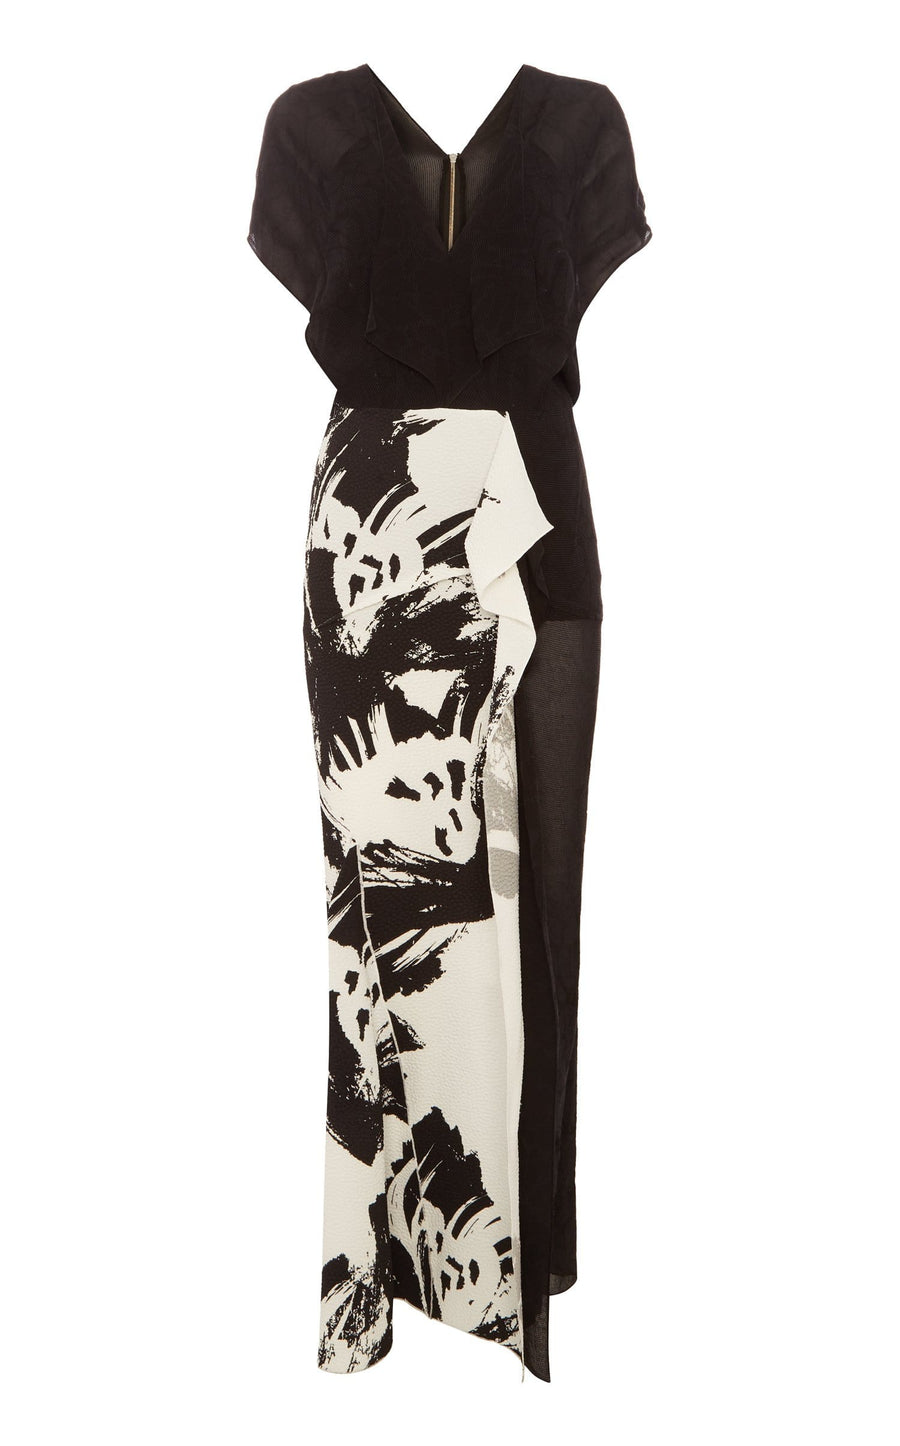 Chandon Dress In Black/Mono Lrg Painterly from Roland Mouret